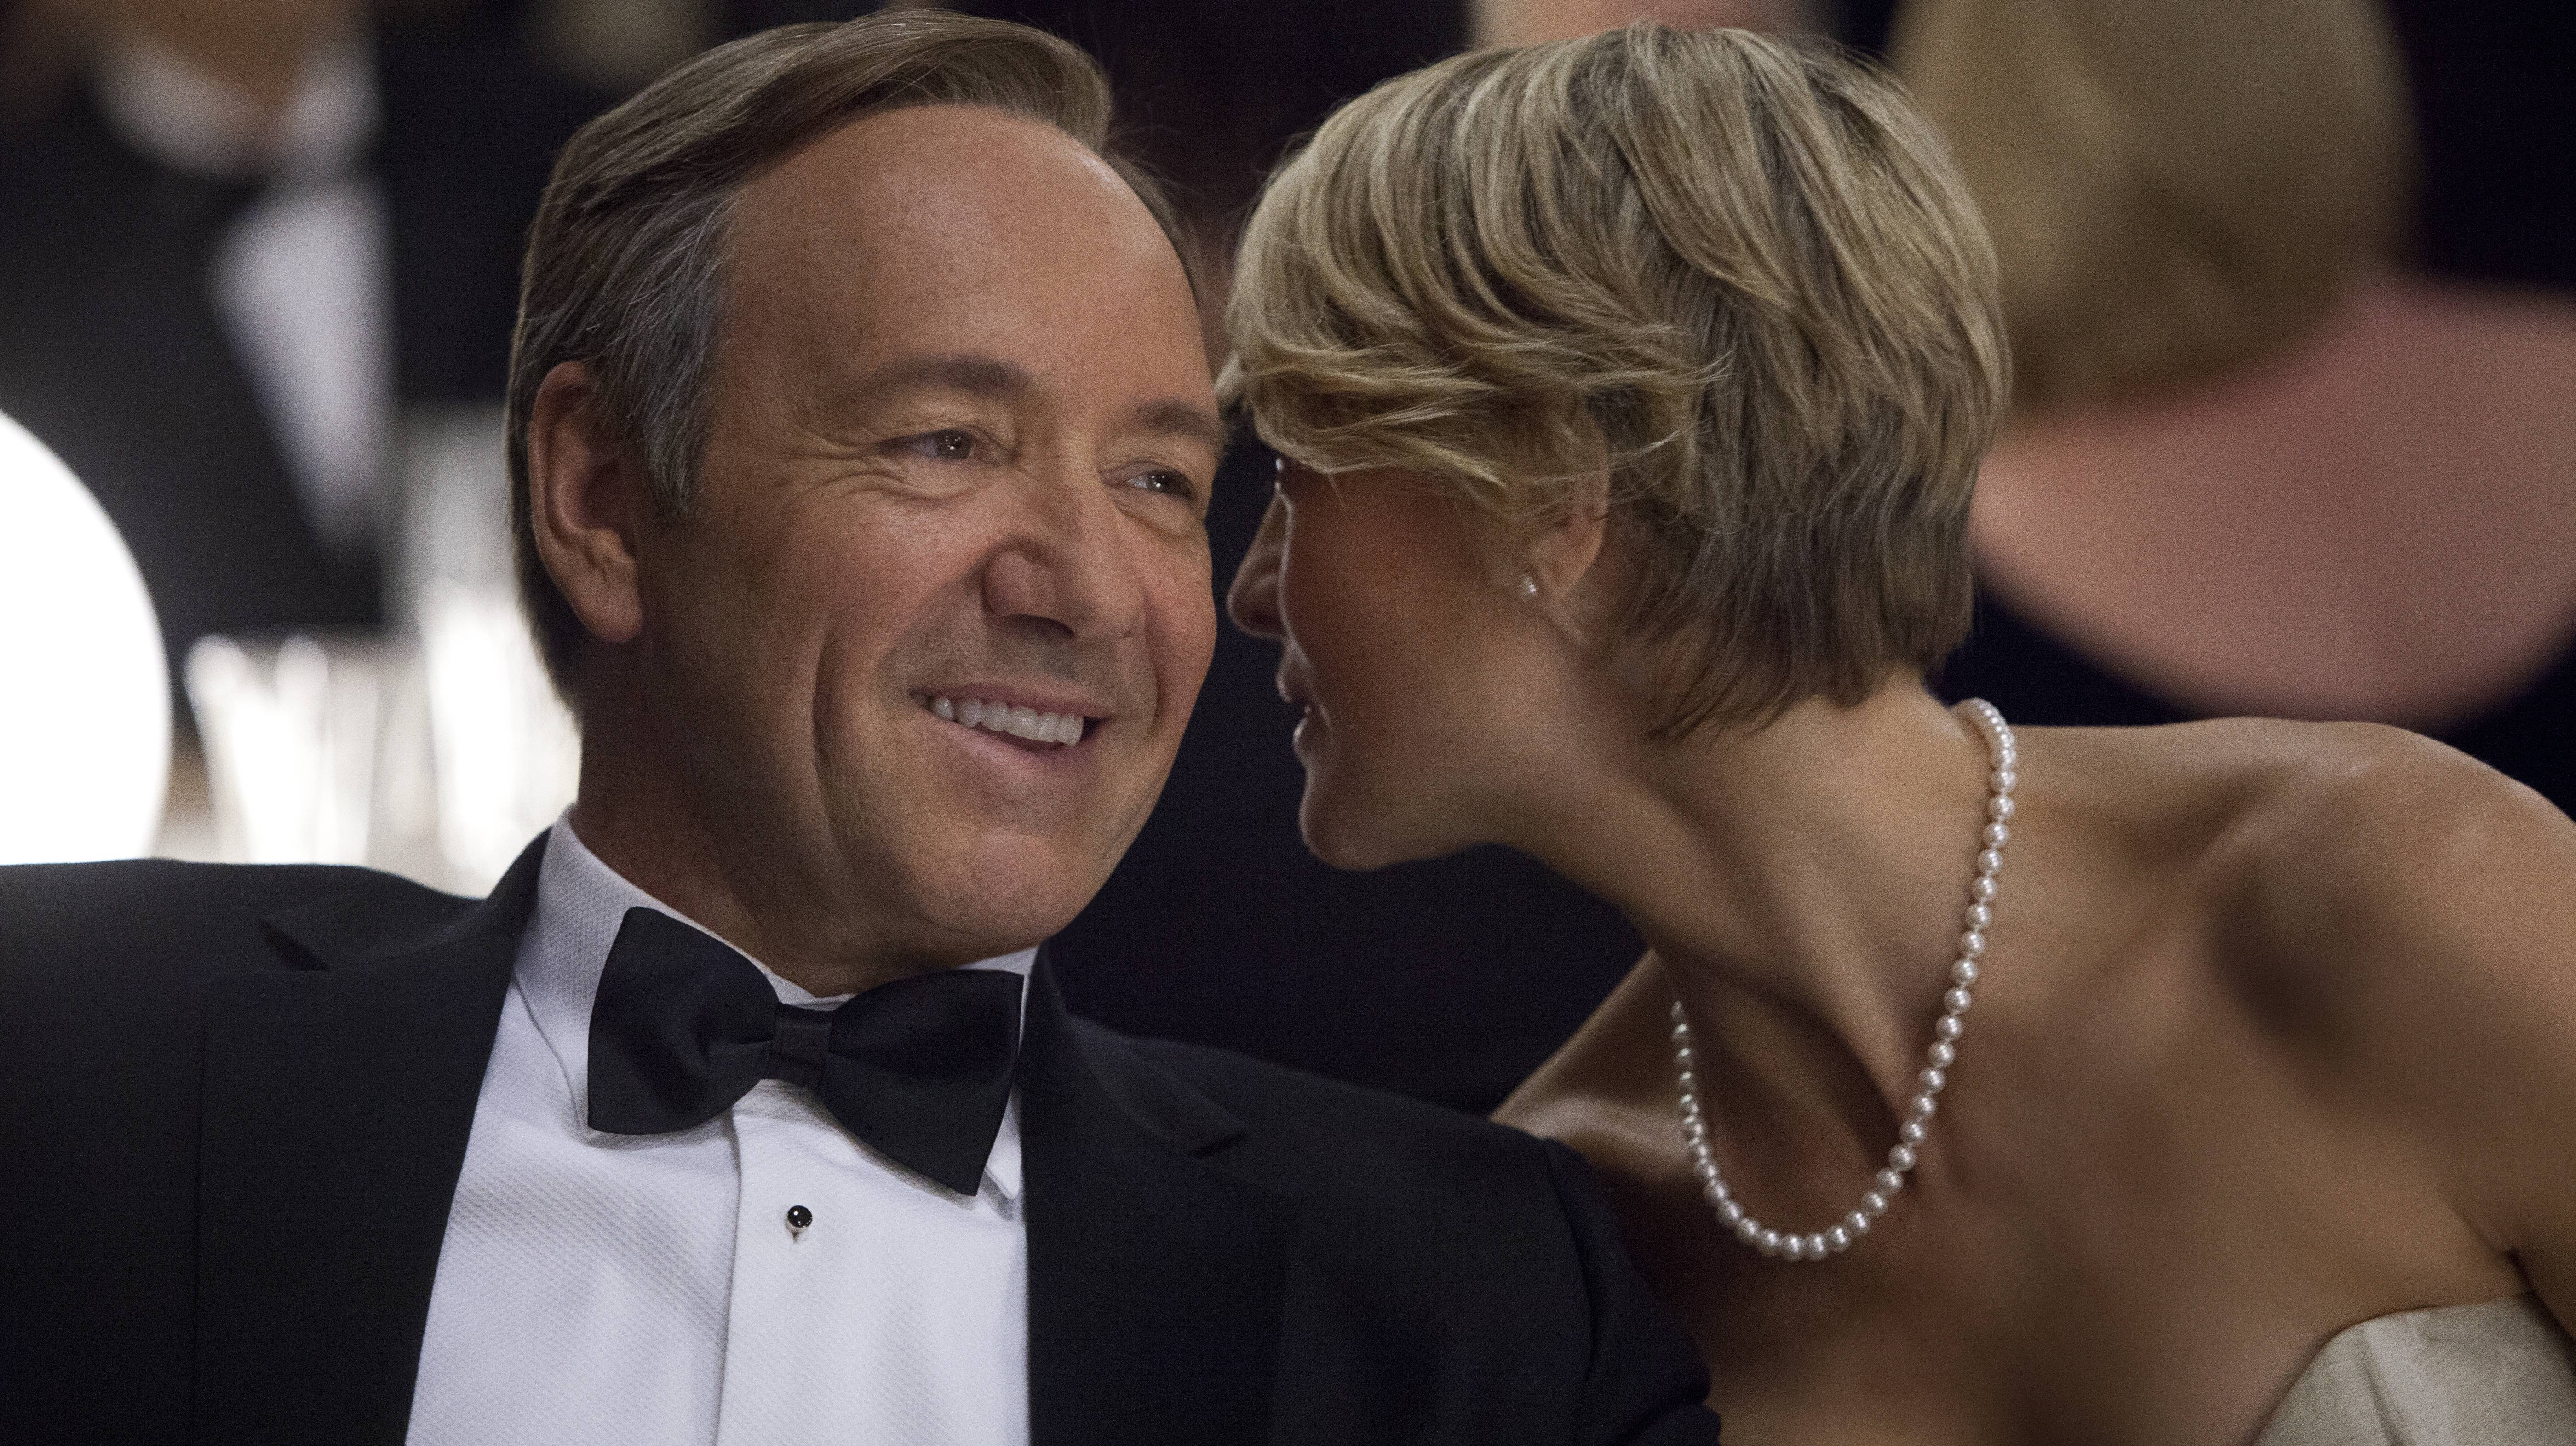 Frank-Underwood-Claire-Underwood-House-of-Cards.jpg